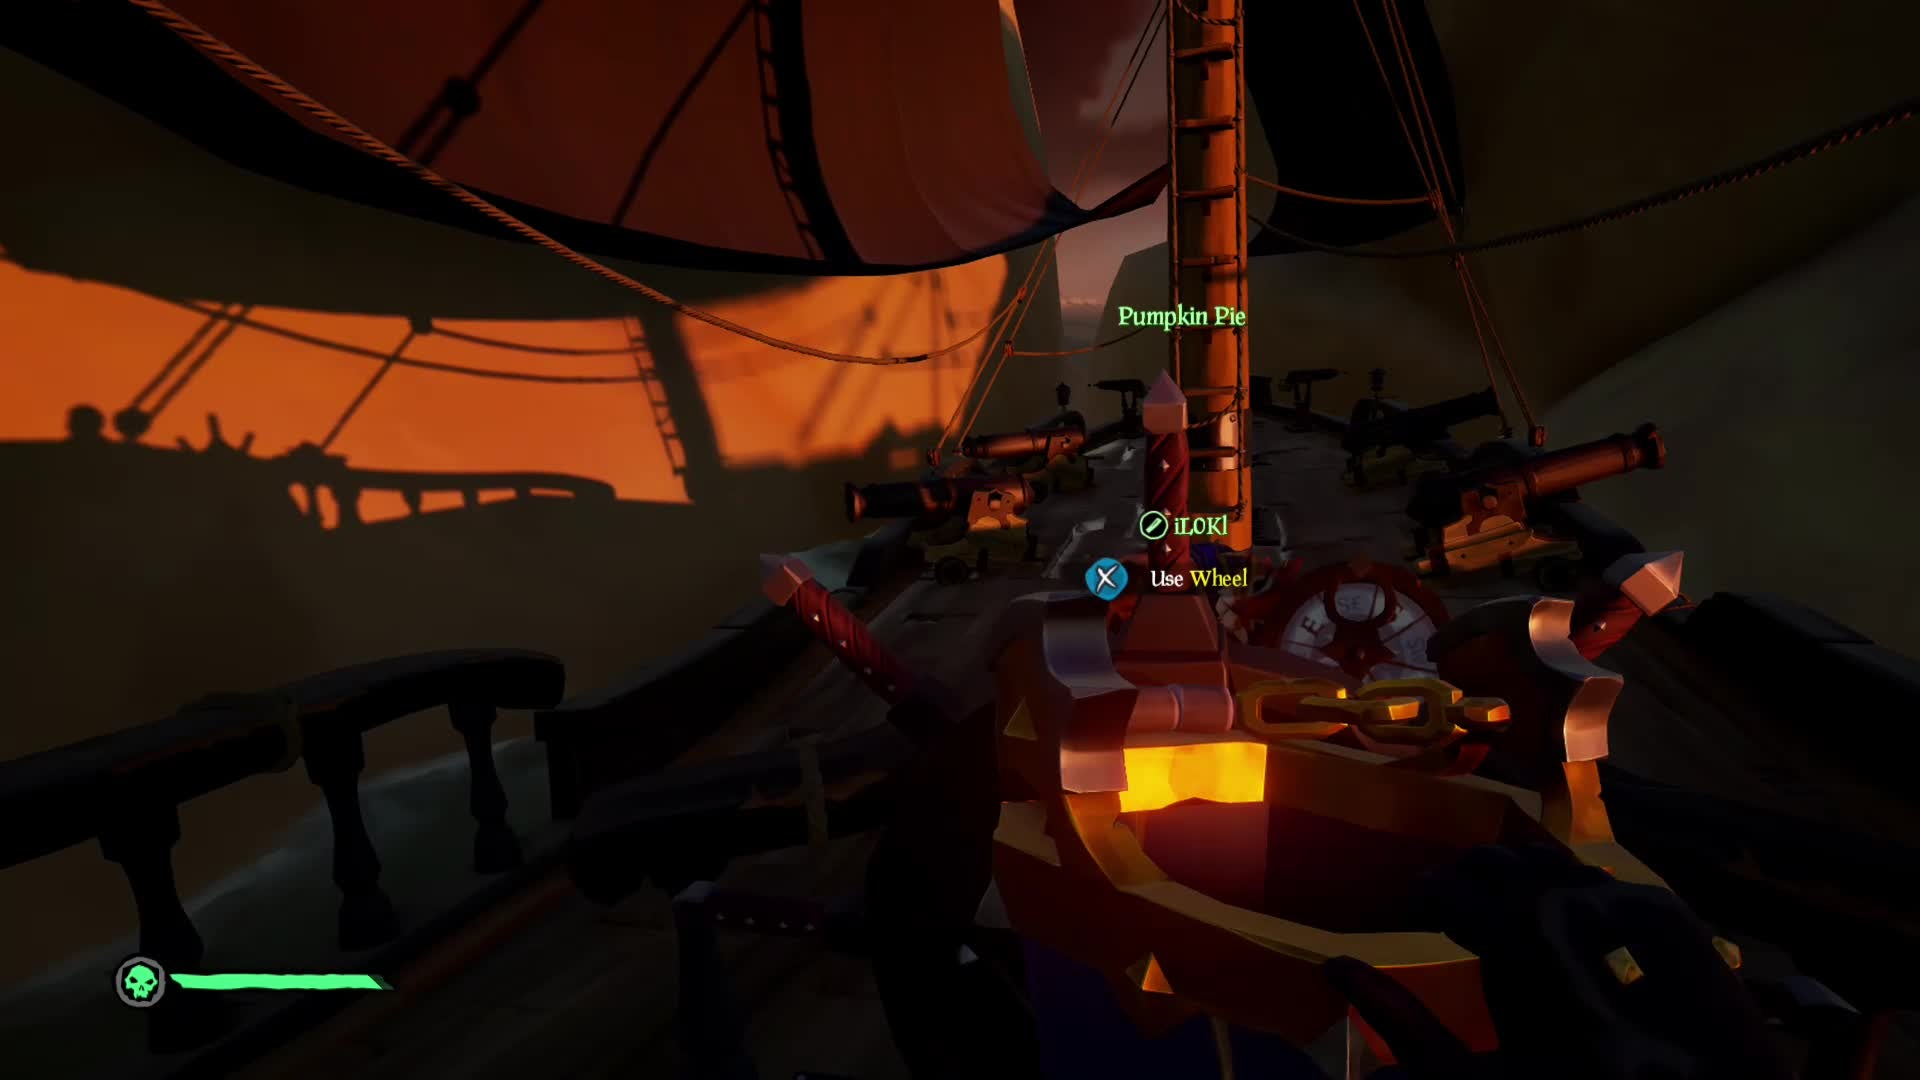 Sea of Thieves: General - Don't ask how we got in this situation  video cover image 0